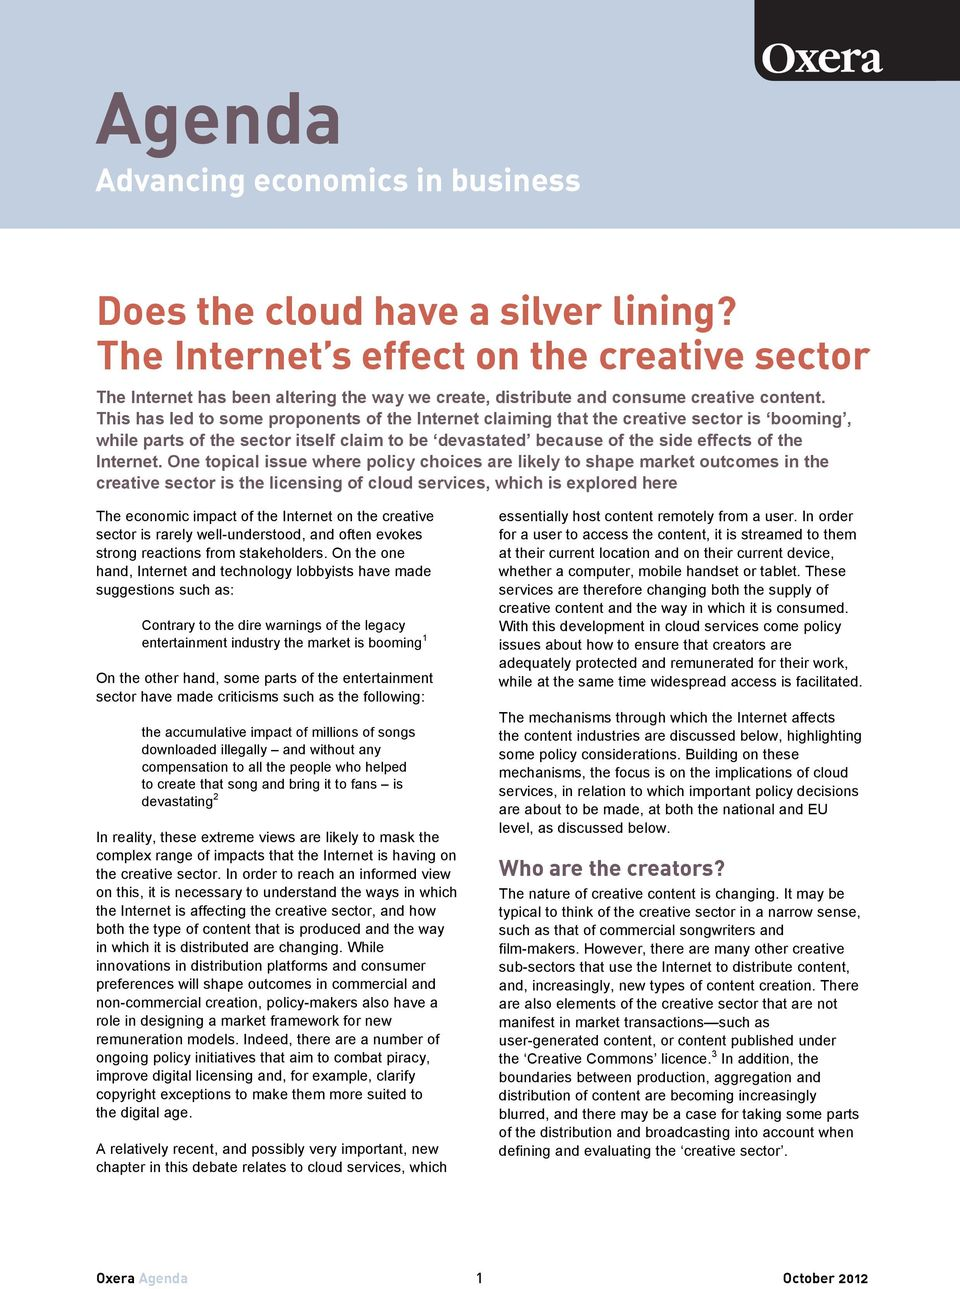 This has led to some proponents of the Internet claiming that the creative sector is booming, while parts of the sector itself claim to be devastated because of the side effects of the Internet.